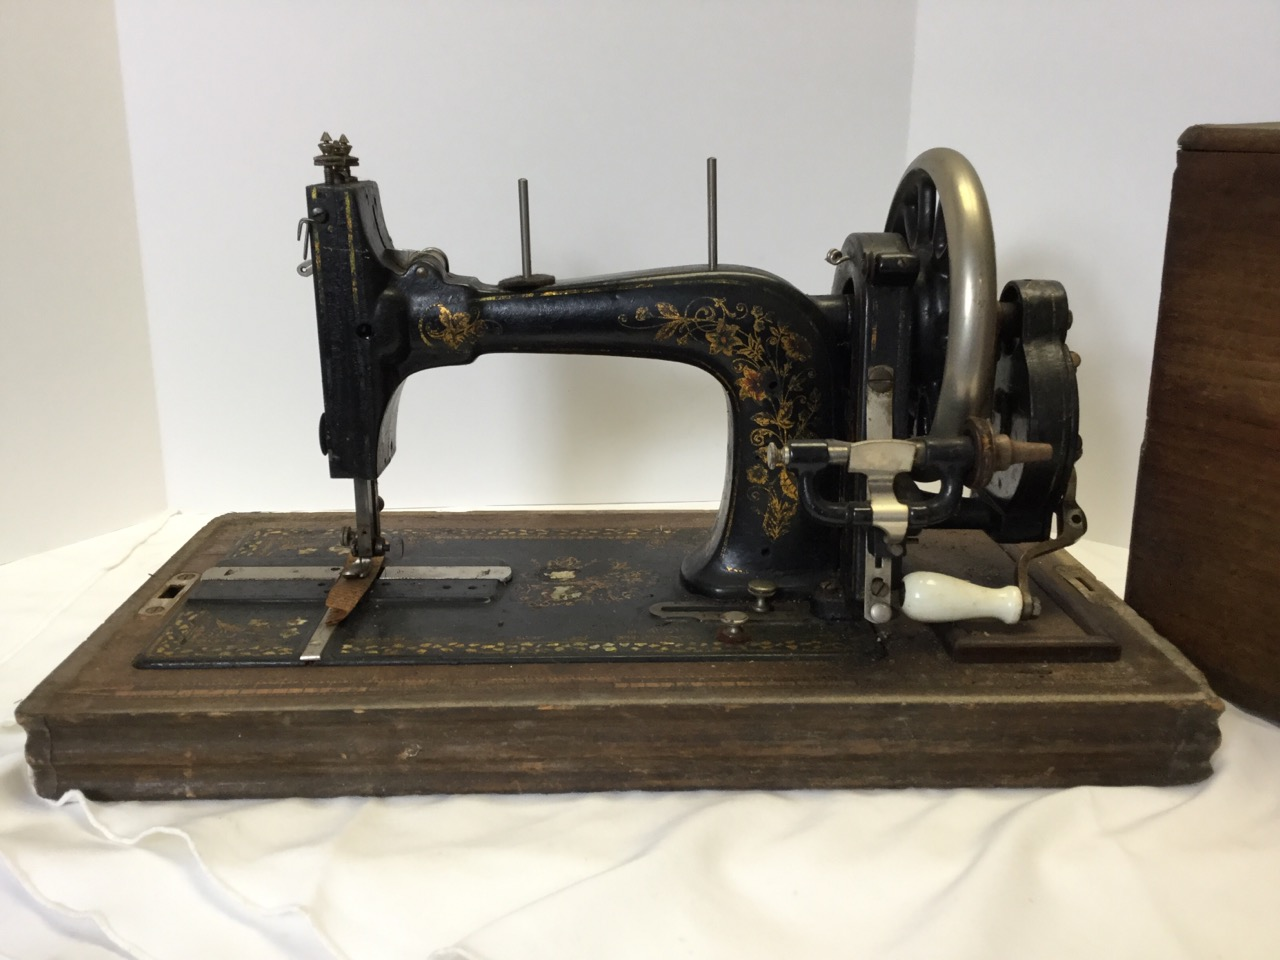 ANTIQUE SEWING MACHINE IN SOLID WOOD CARRYING CASE2.jpg